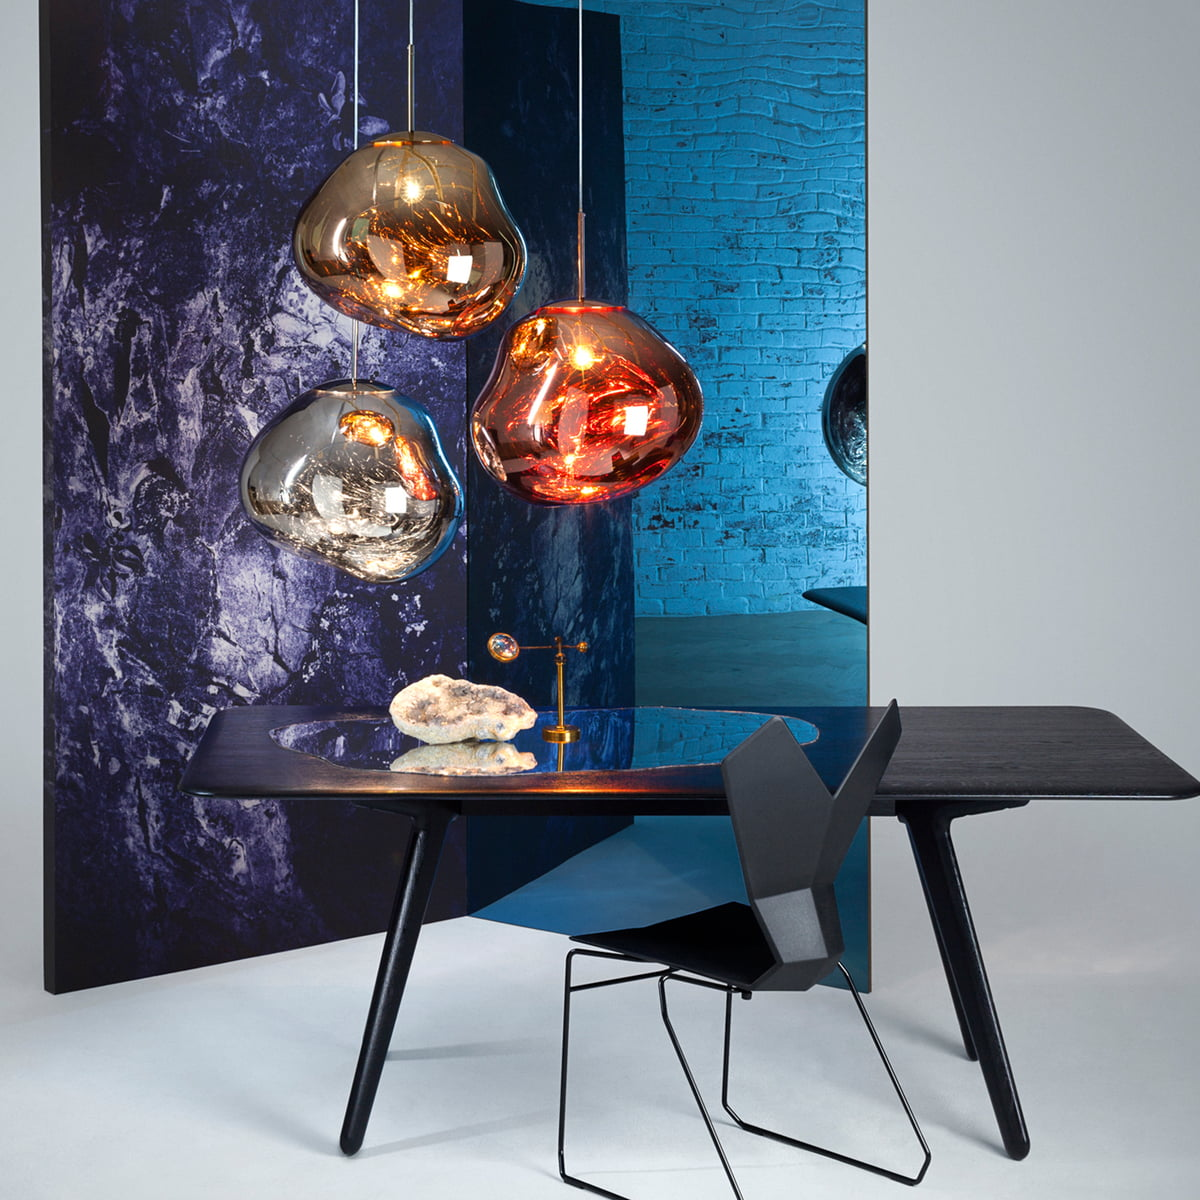 Melt Pendant Lamp by Tom Dixon in our shop